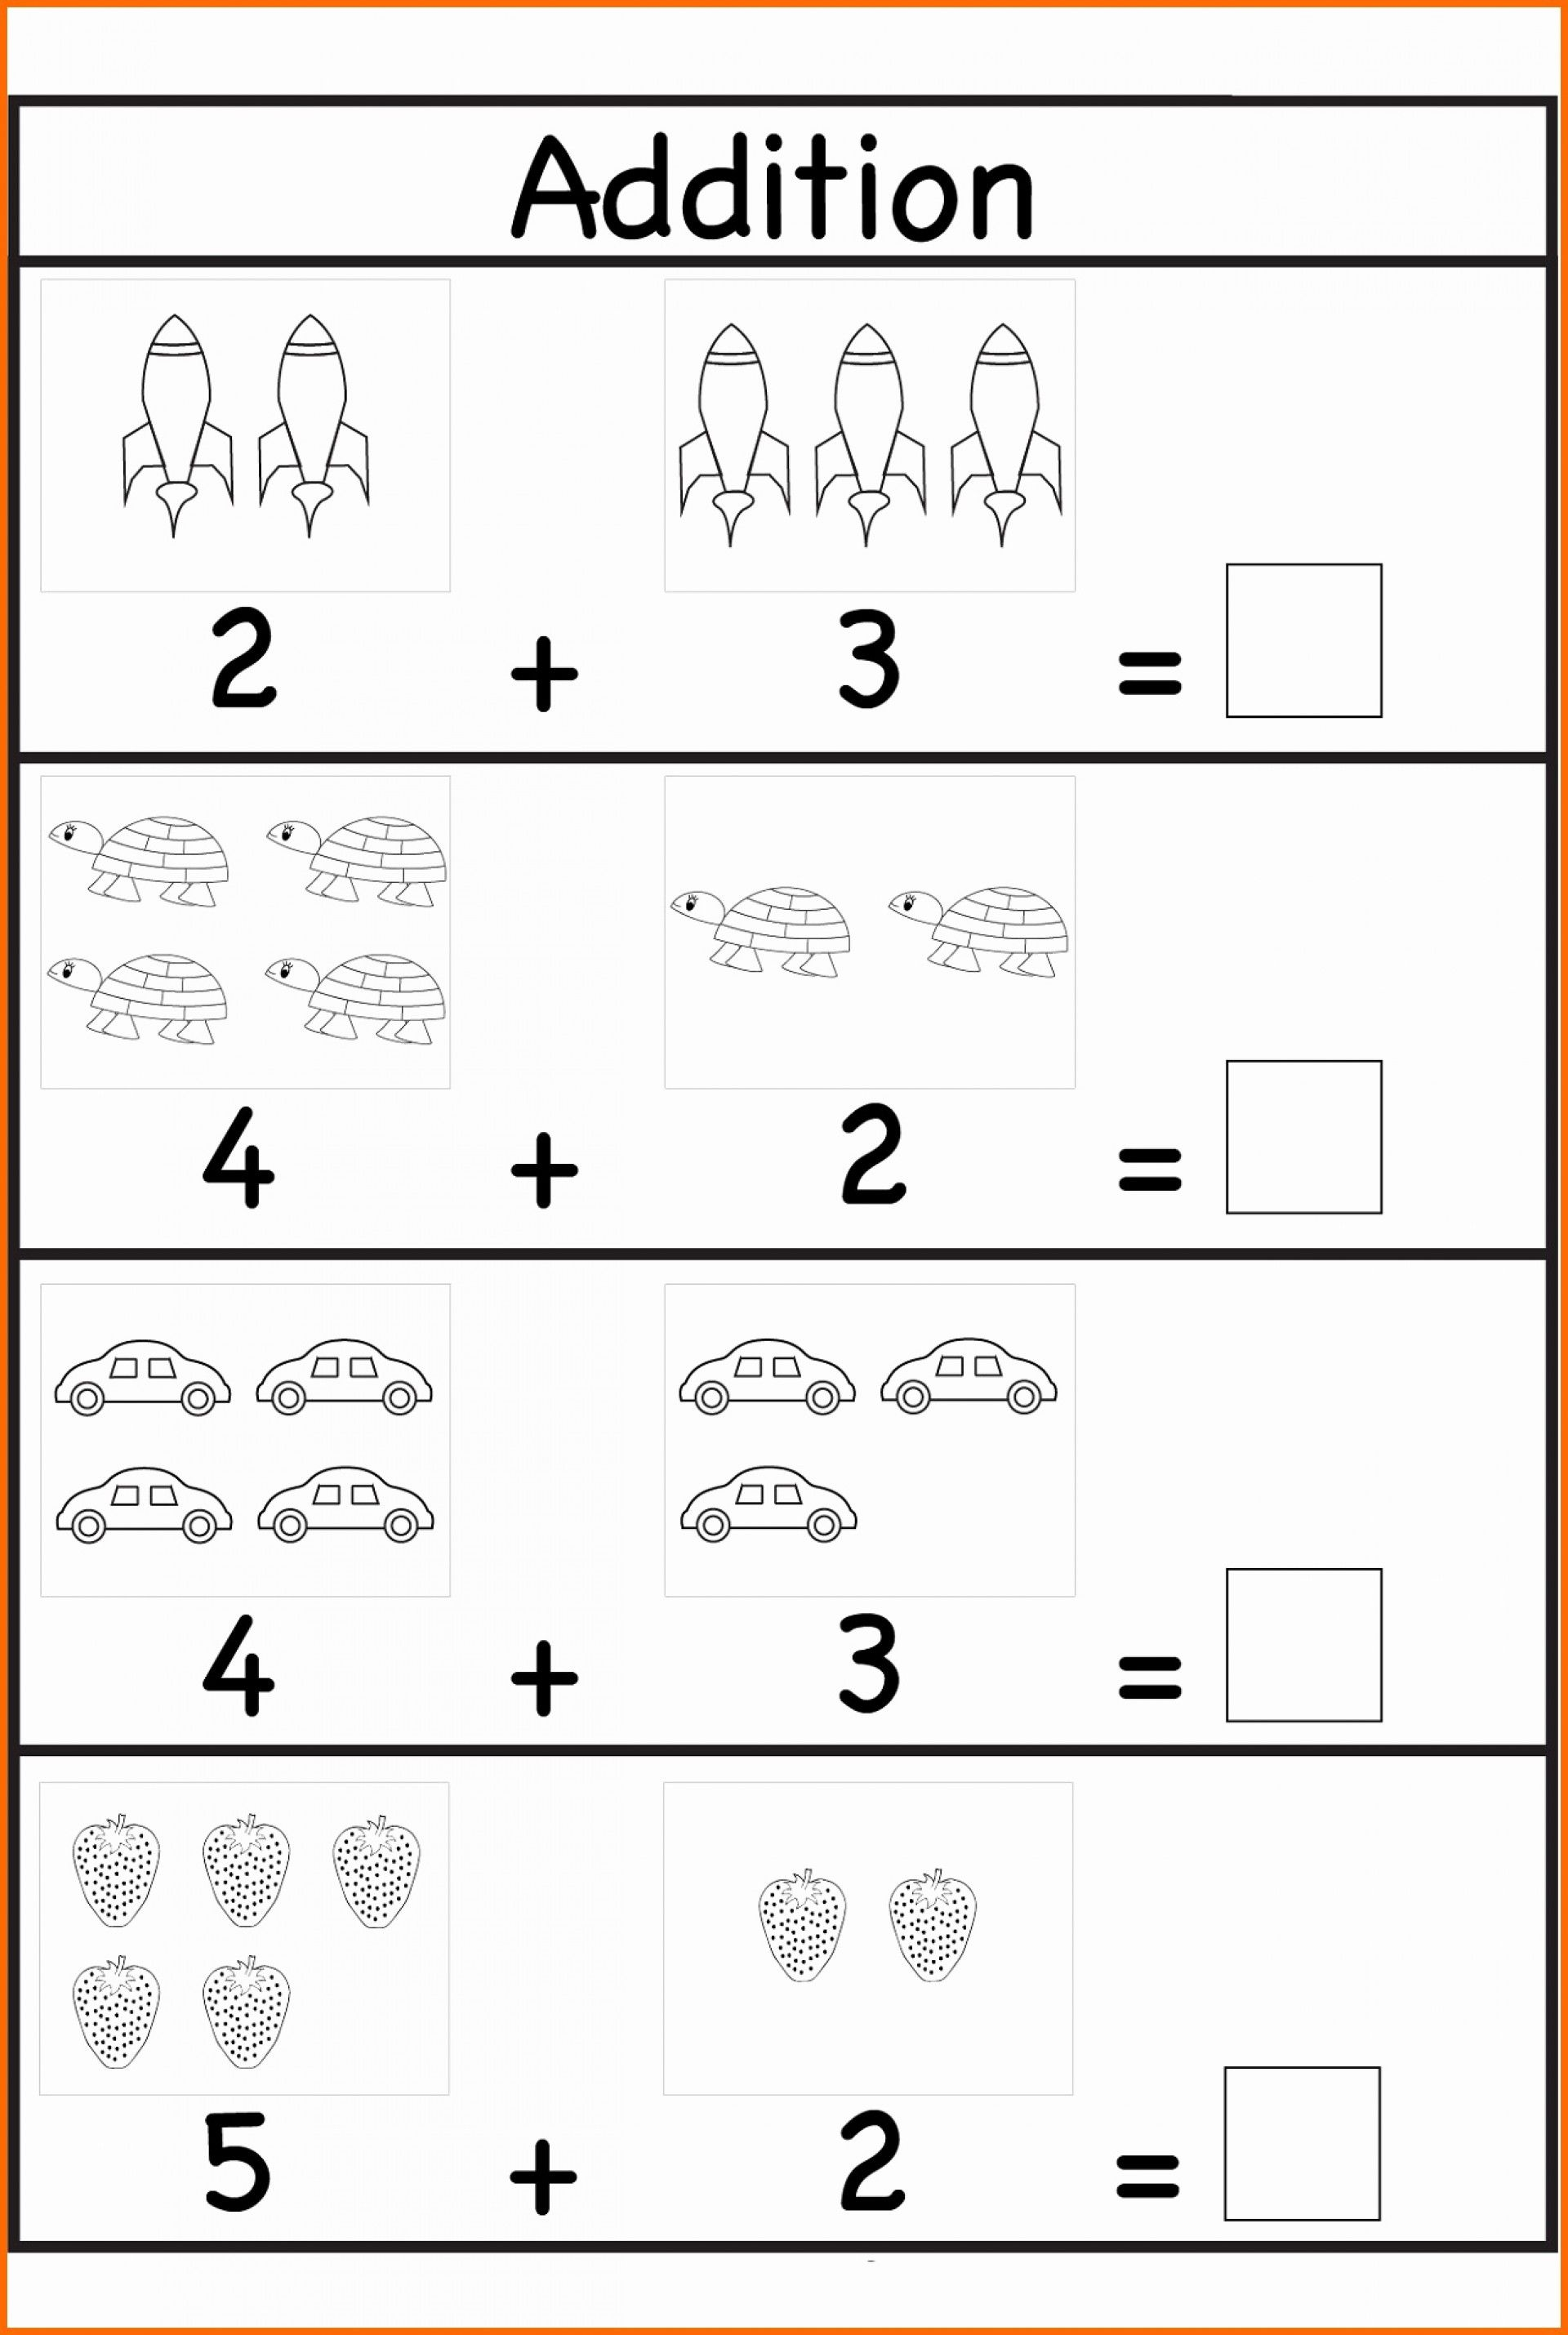 010 Free Printable Preschool Maths Worksheets Them And Try Kindergarten Addition Worksheets Kindergarten Math Worksheets Kindergarten Math Worksheets Addition